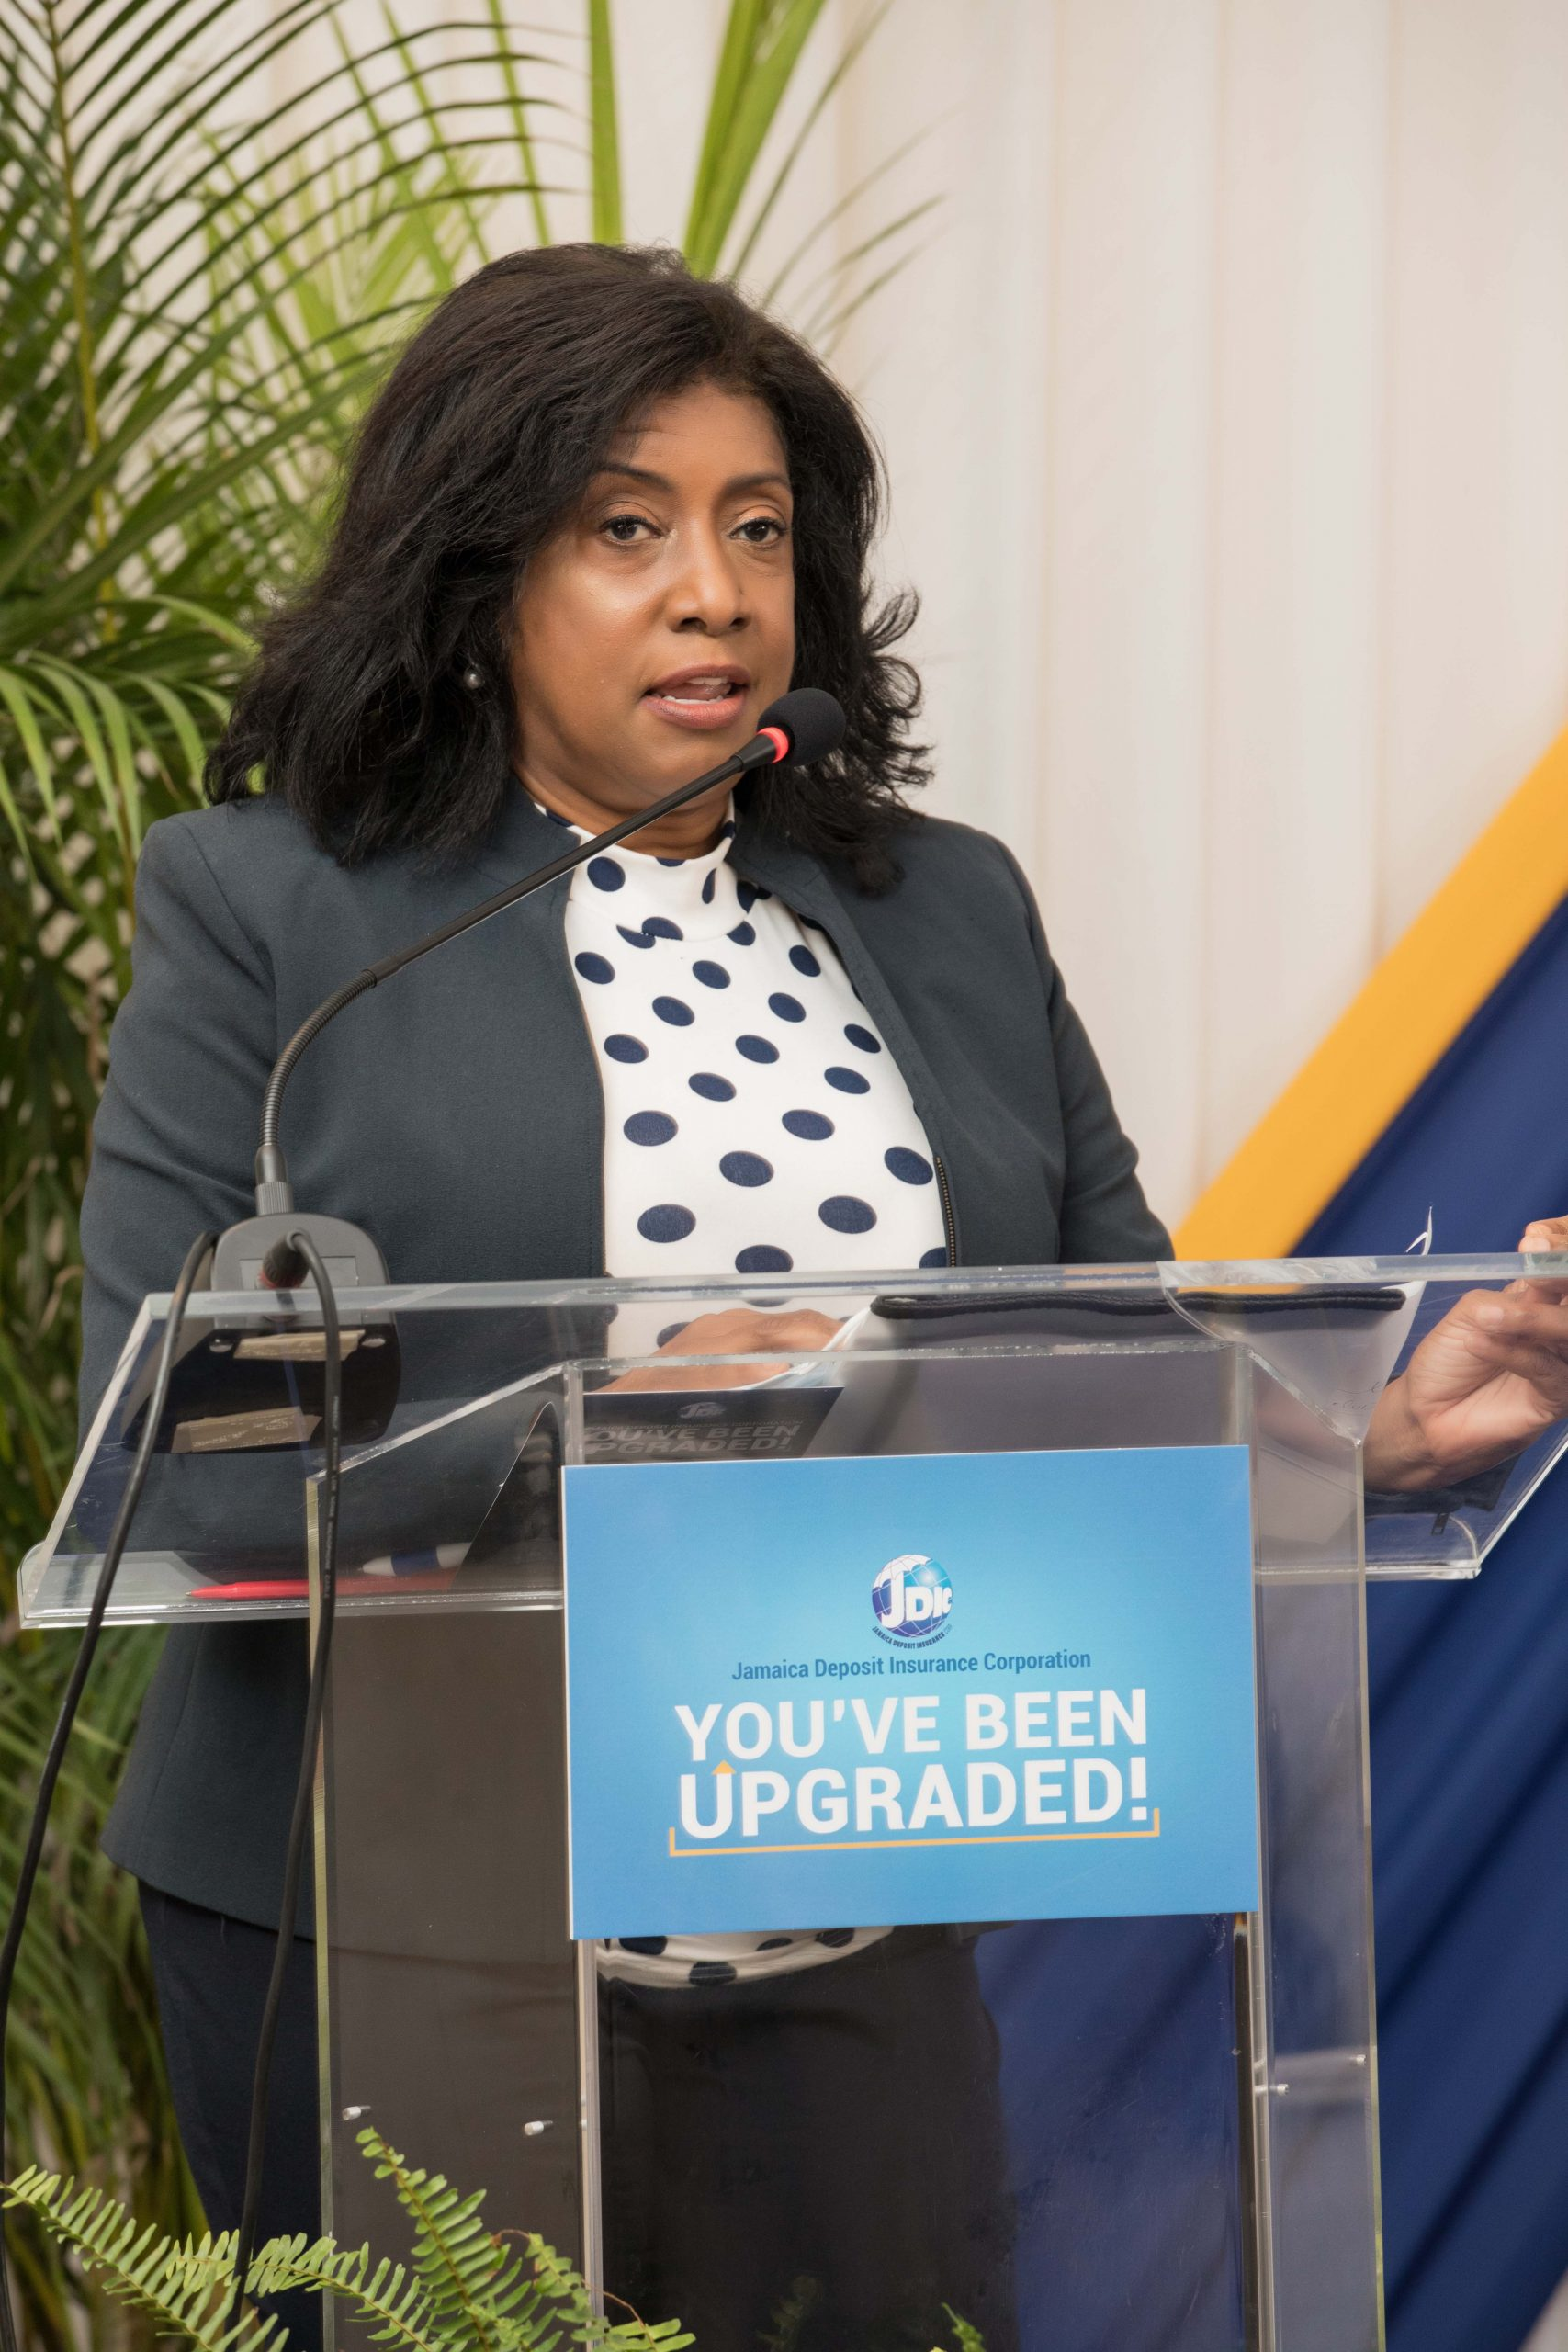 Antoinette McKain, Chief Executive Office, JDIC speaking on the benefits of Deposit Insurance at the JDIC's You've Been Upgraded Digital Townhall held recently.